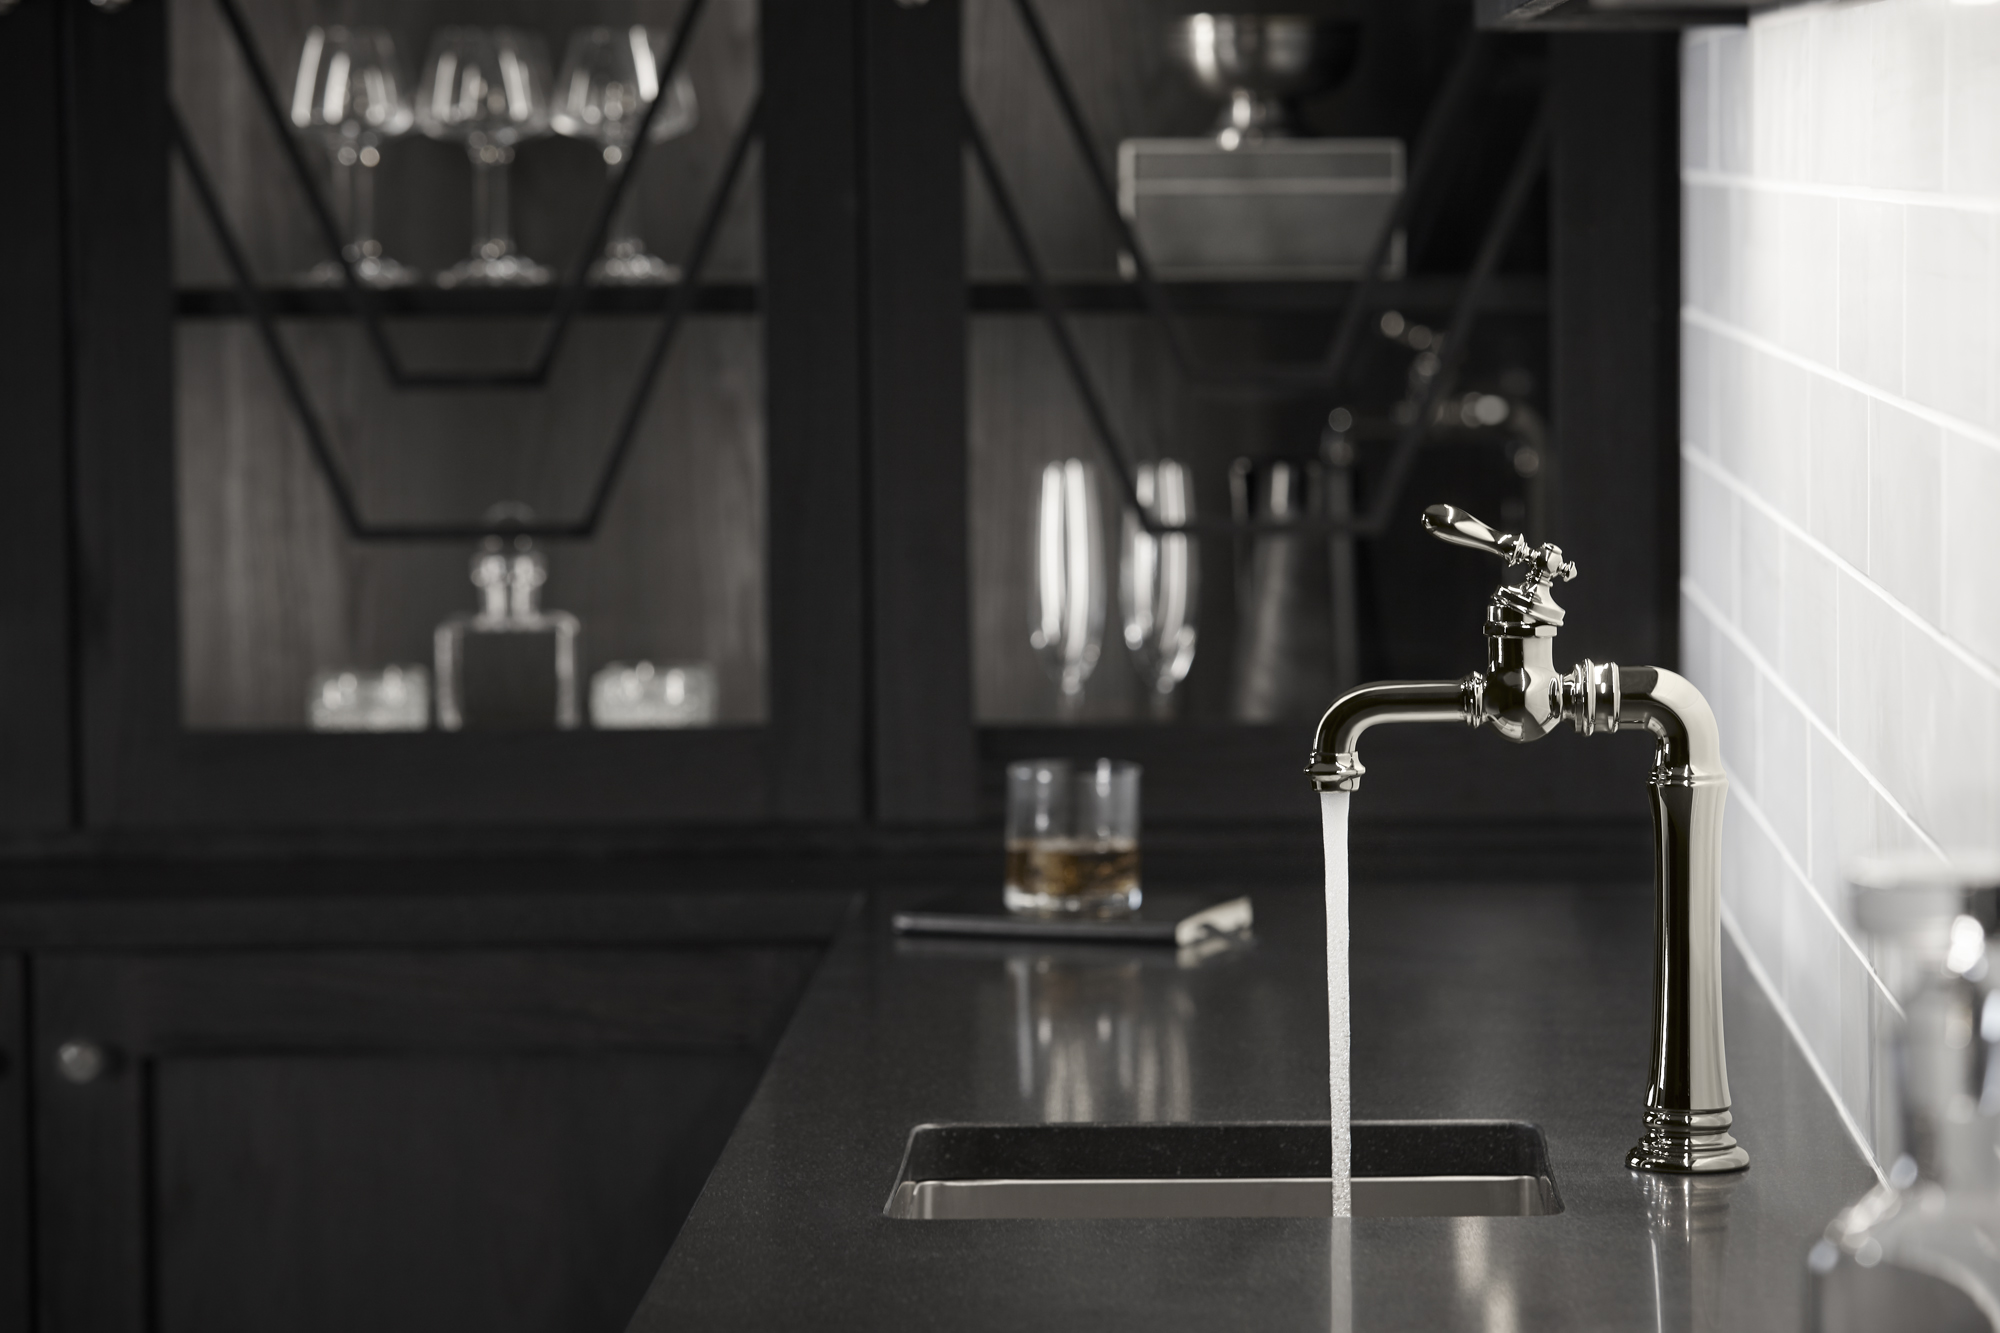 Artifacts Gentleman's bar faucet     Strive bar sink      Featuring a signature top-mount lever handle, the bar faucet evokes the comfort and camaraderie of a favorite pub.